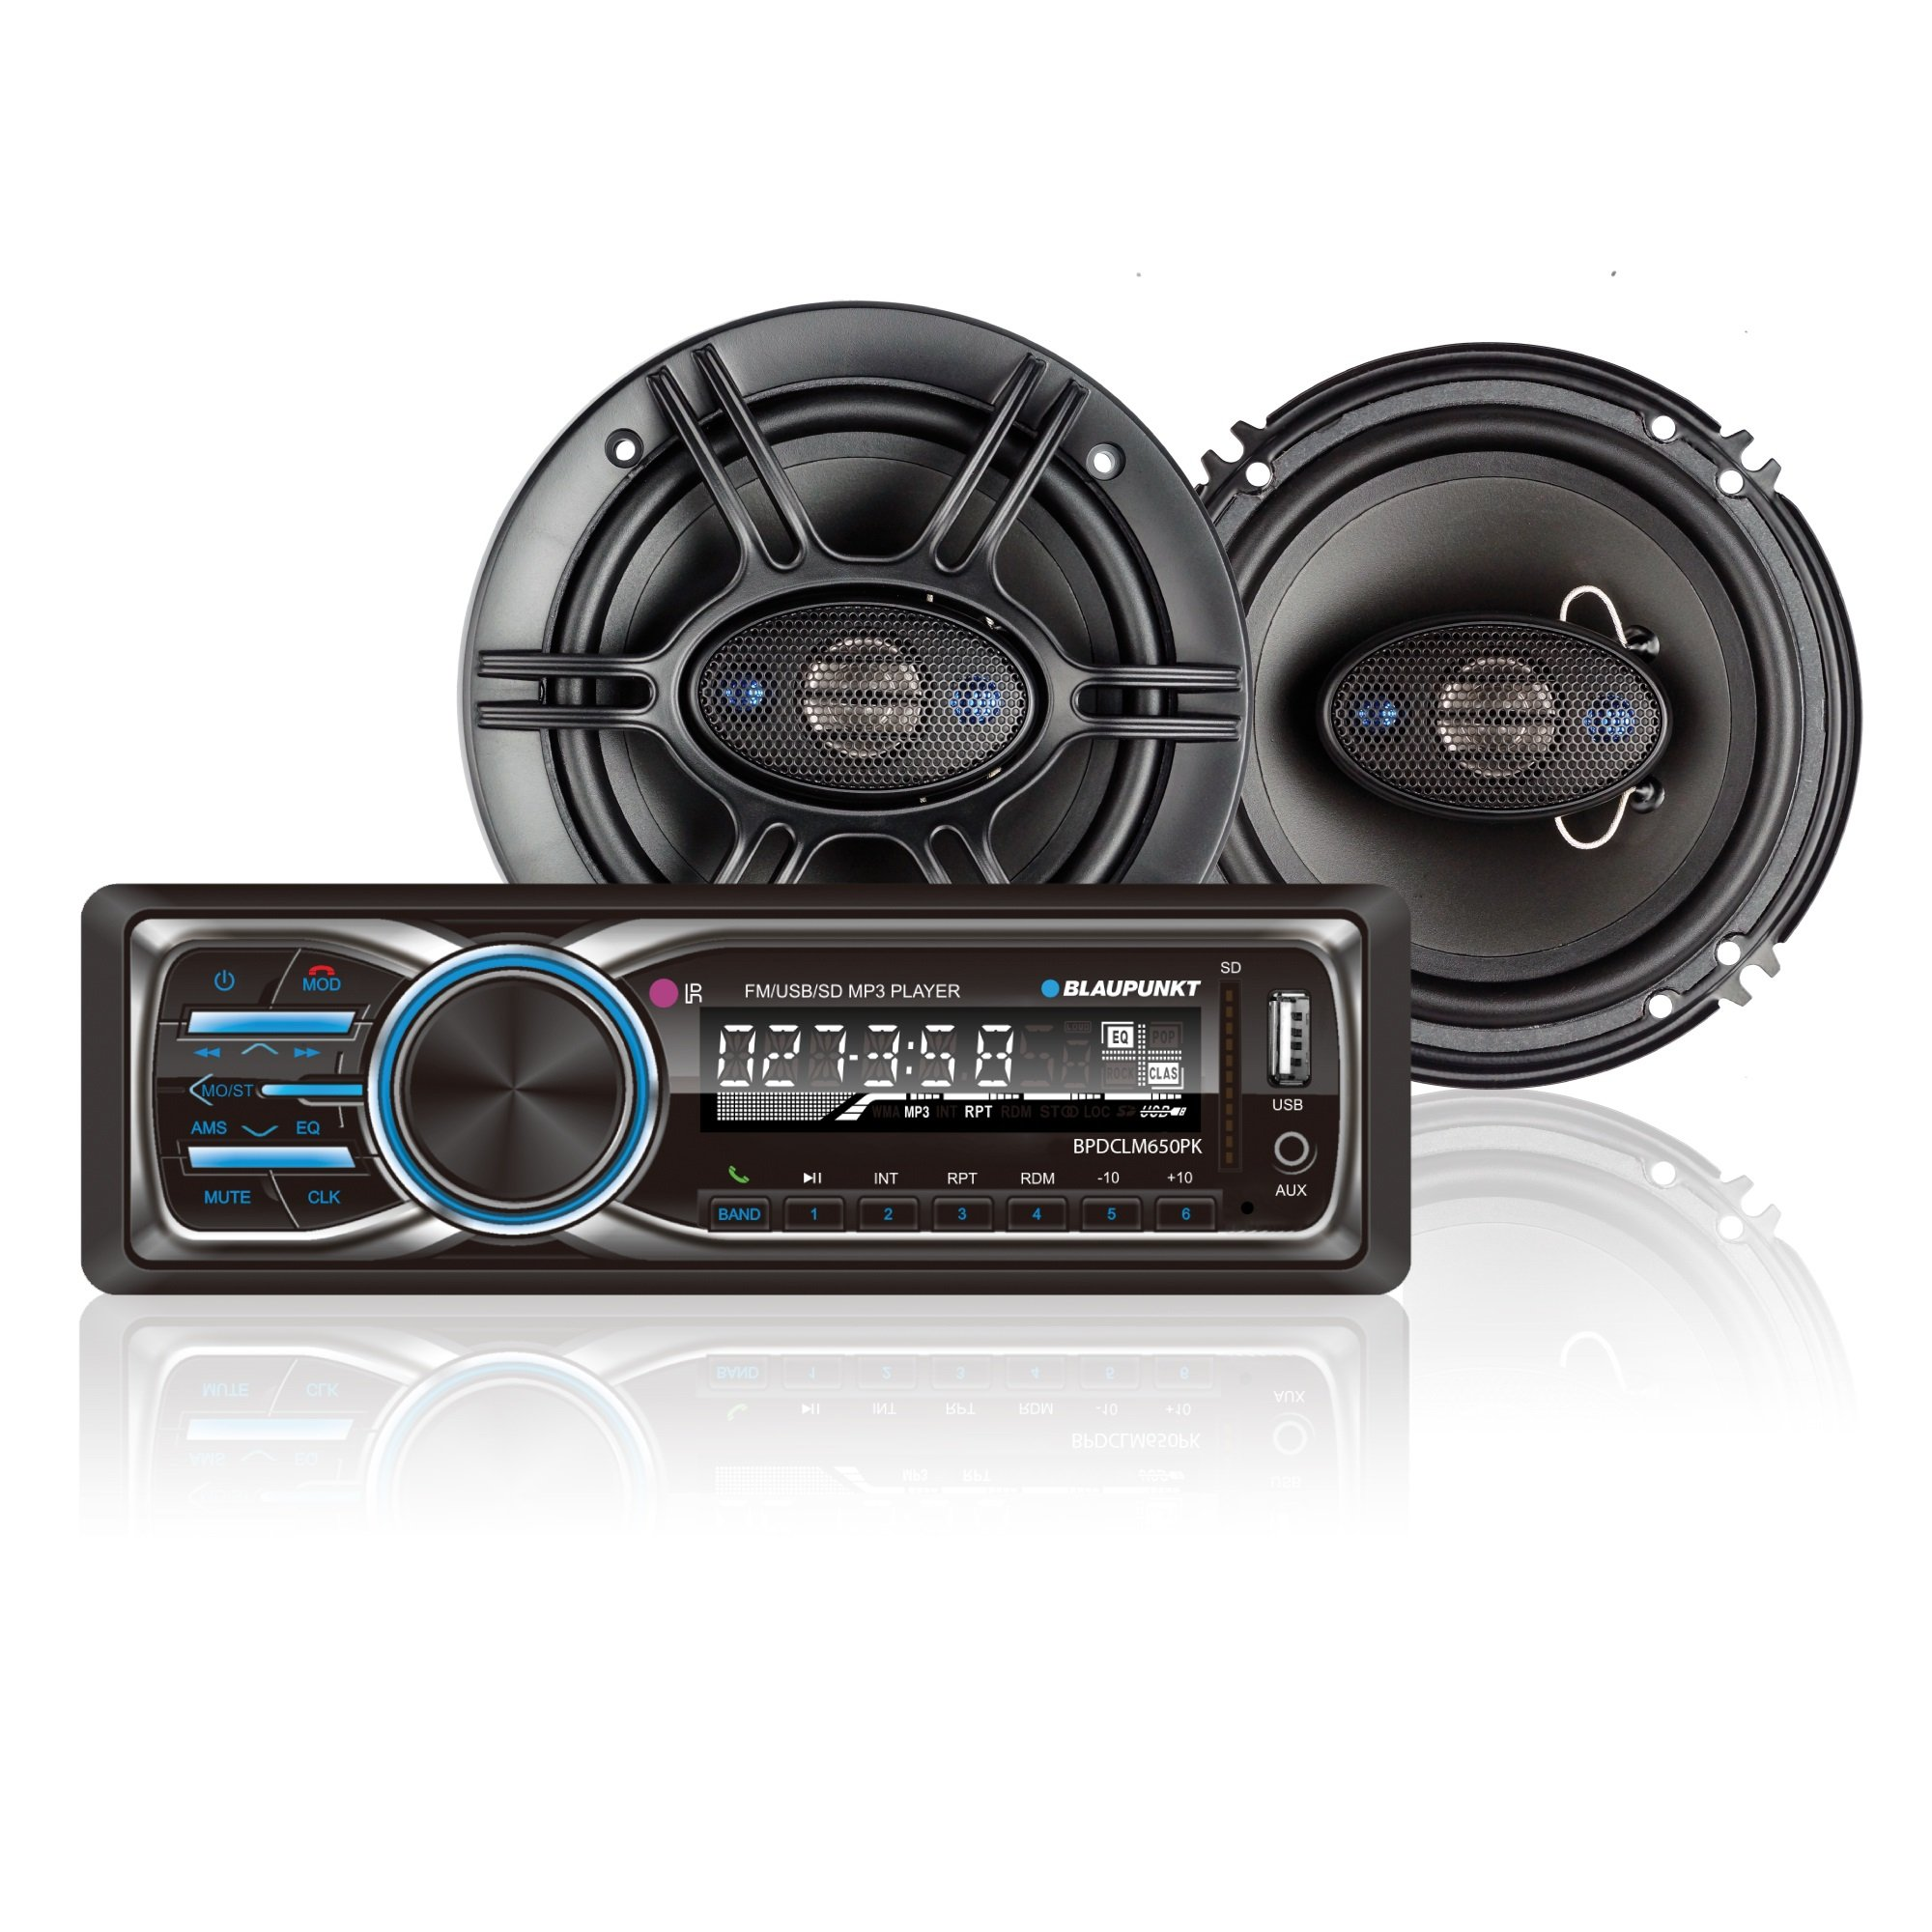 Blaupunkt Columbus 100 Stereo Receiver and GTX650 6.5-Inch 360W Coaxial Speaker Bundle